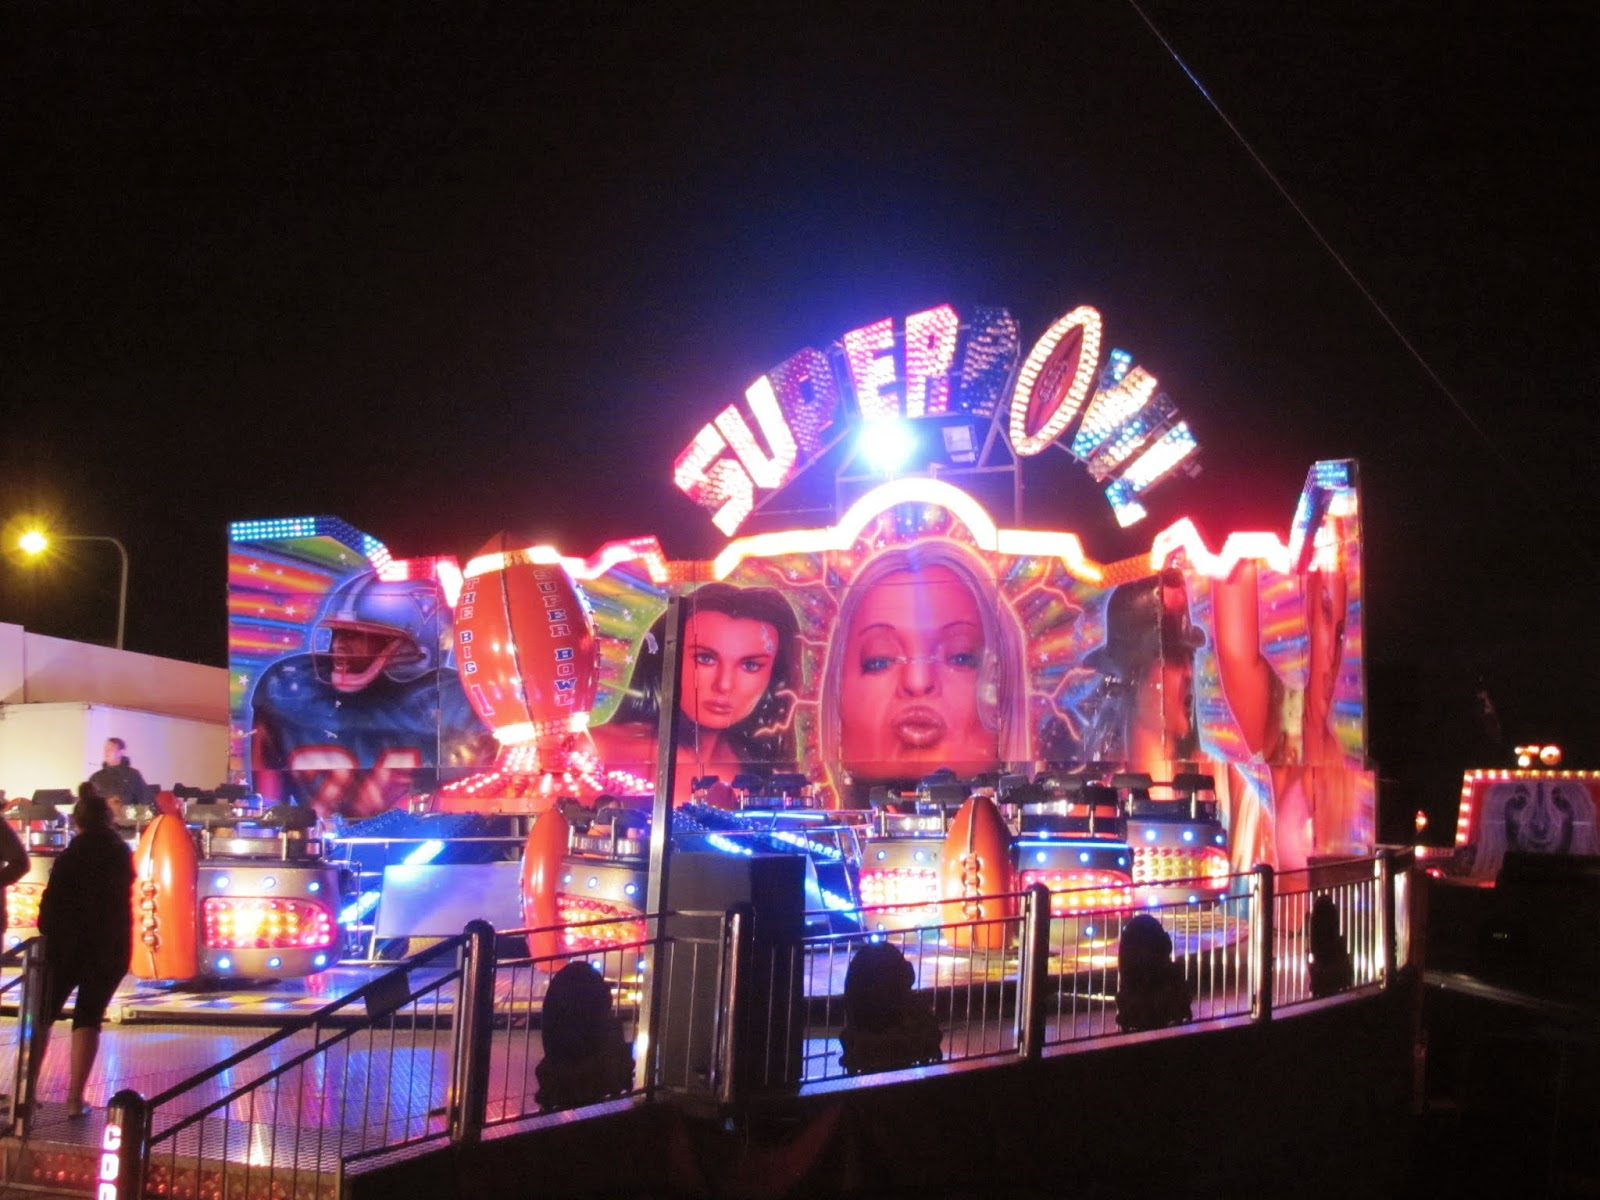 Carnival ride The Superbowl in Dublin